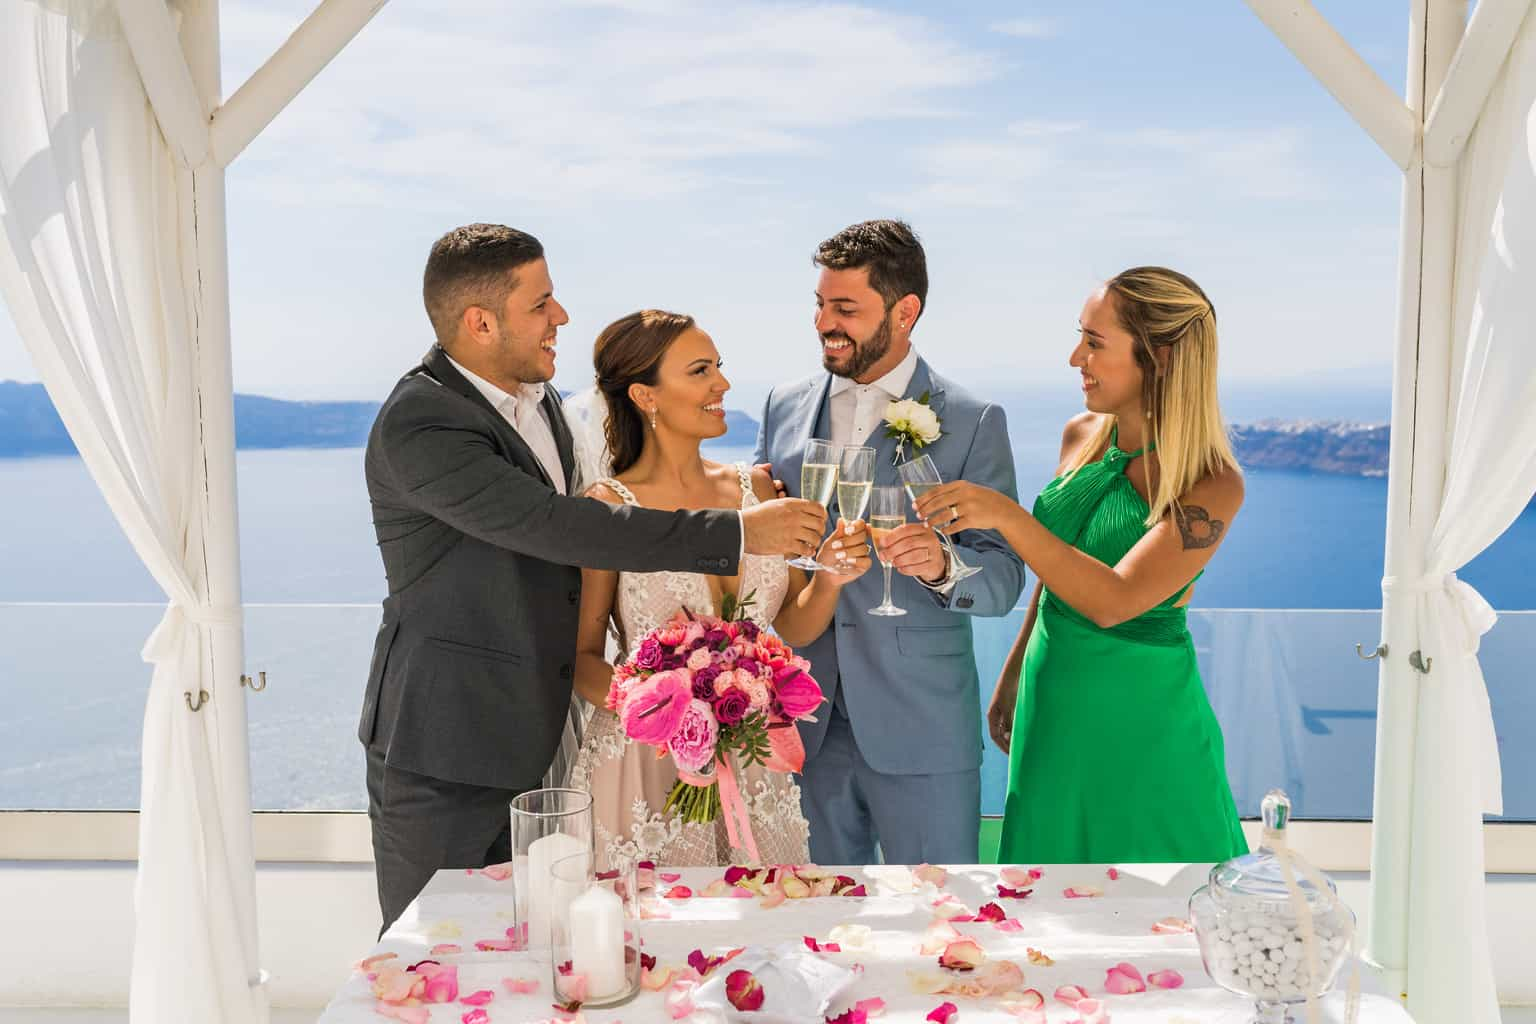 Destination-wedding-grecia-elopment-wedding-fotografia-life-click-studioLFC107of185